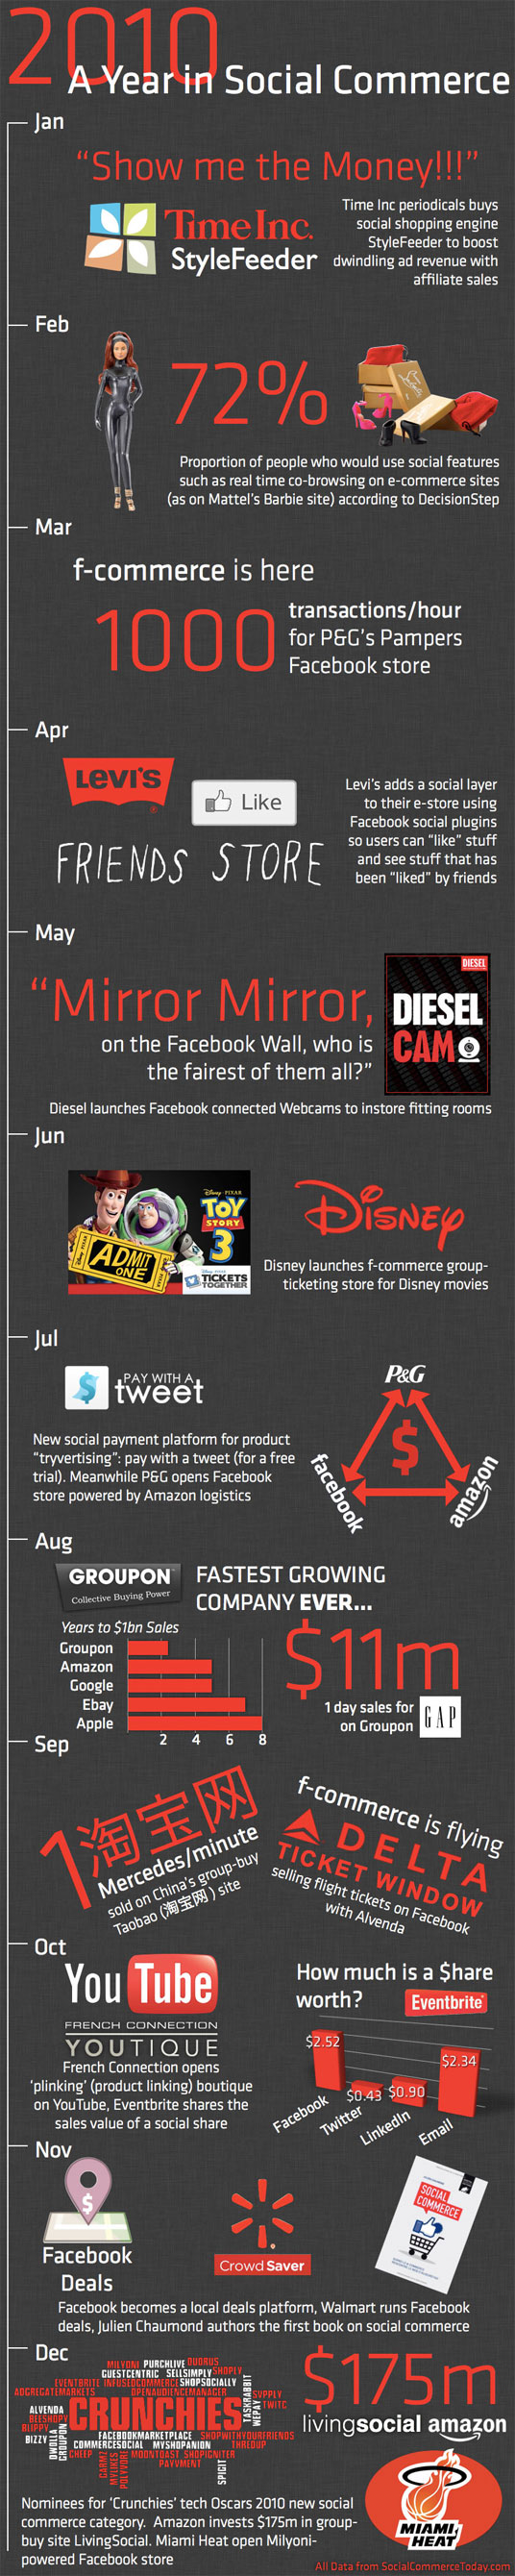 2010 - the year of social commerce